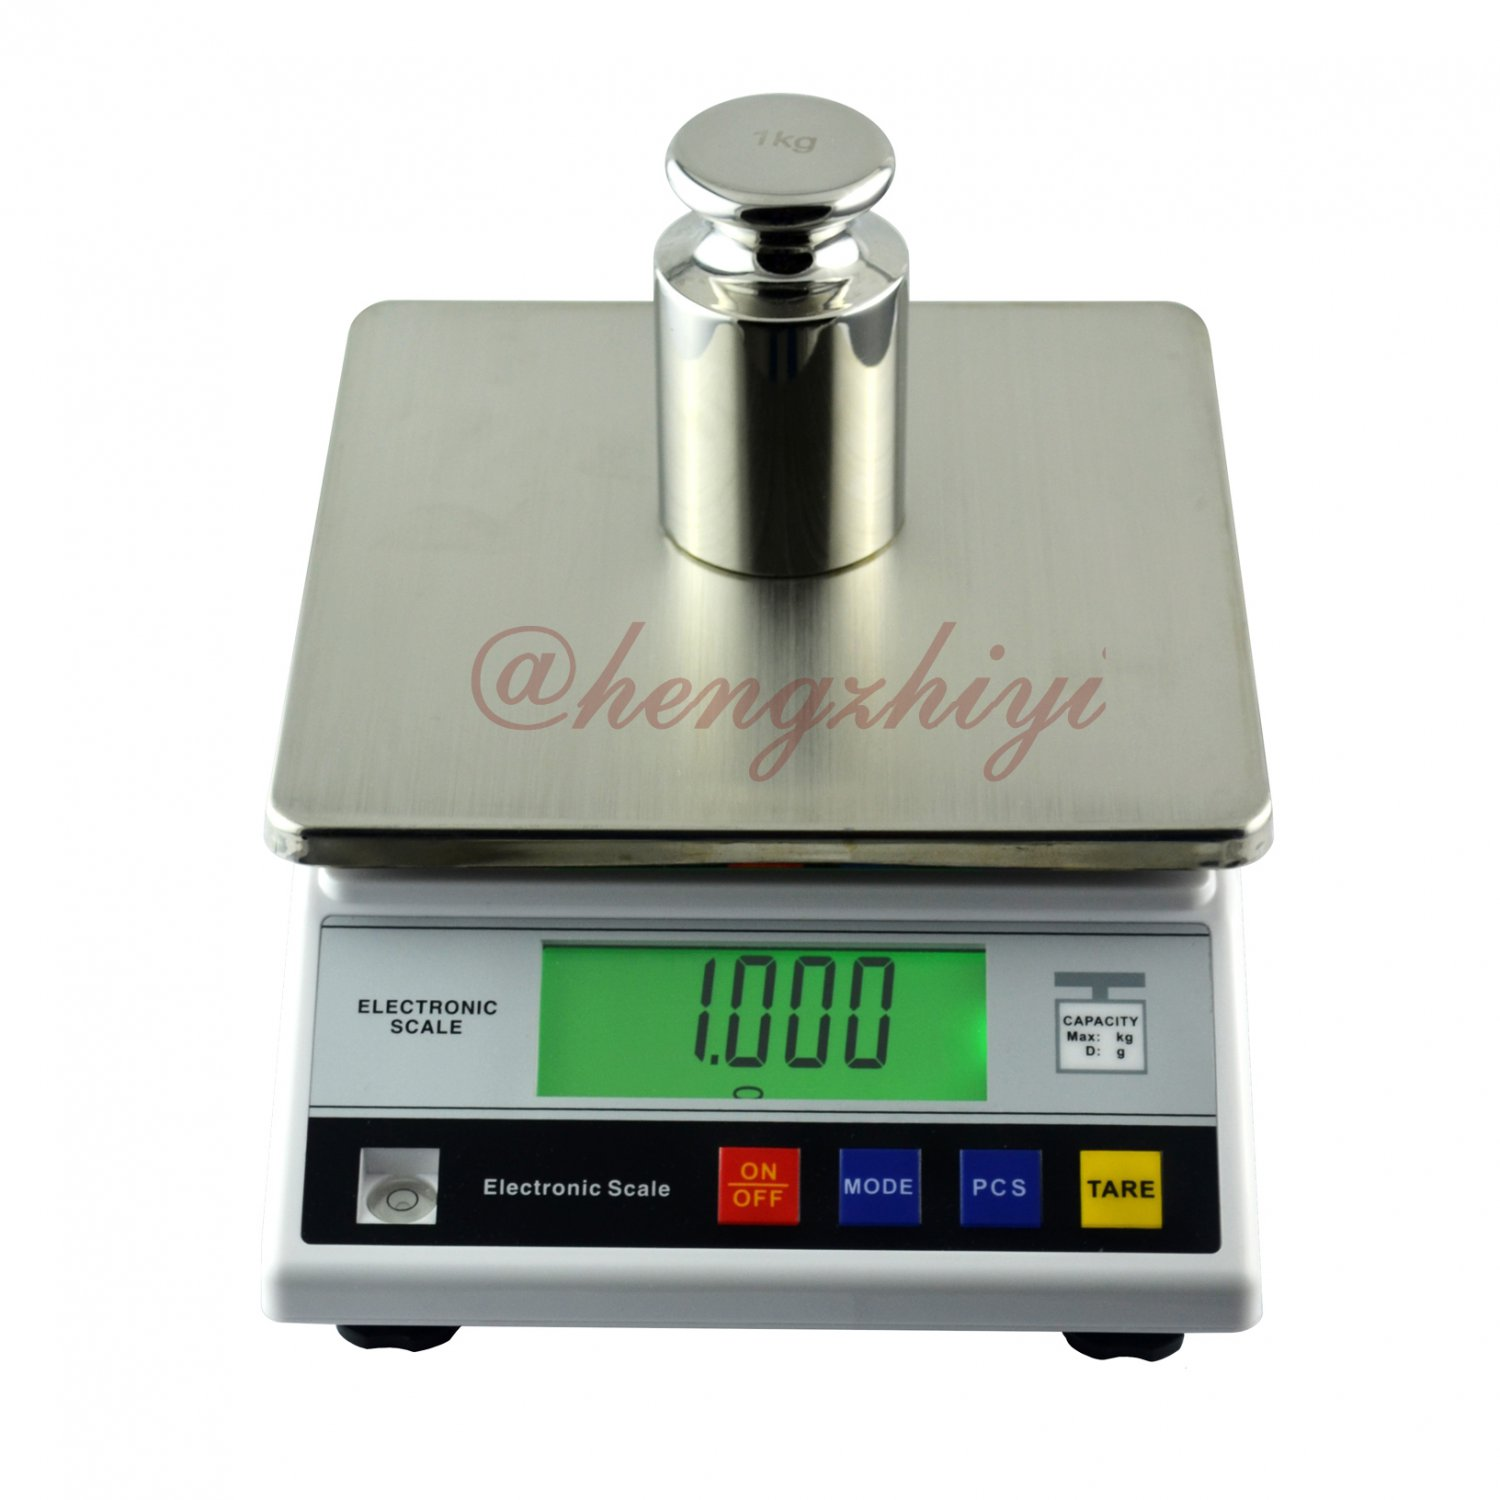 Weight Scales Big W 10kg X 1g Electronic Accurate Industrial Weighing Balance